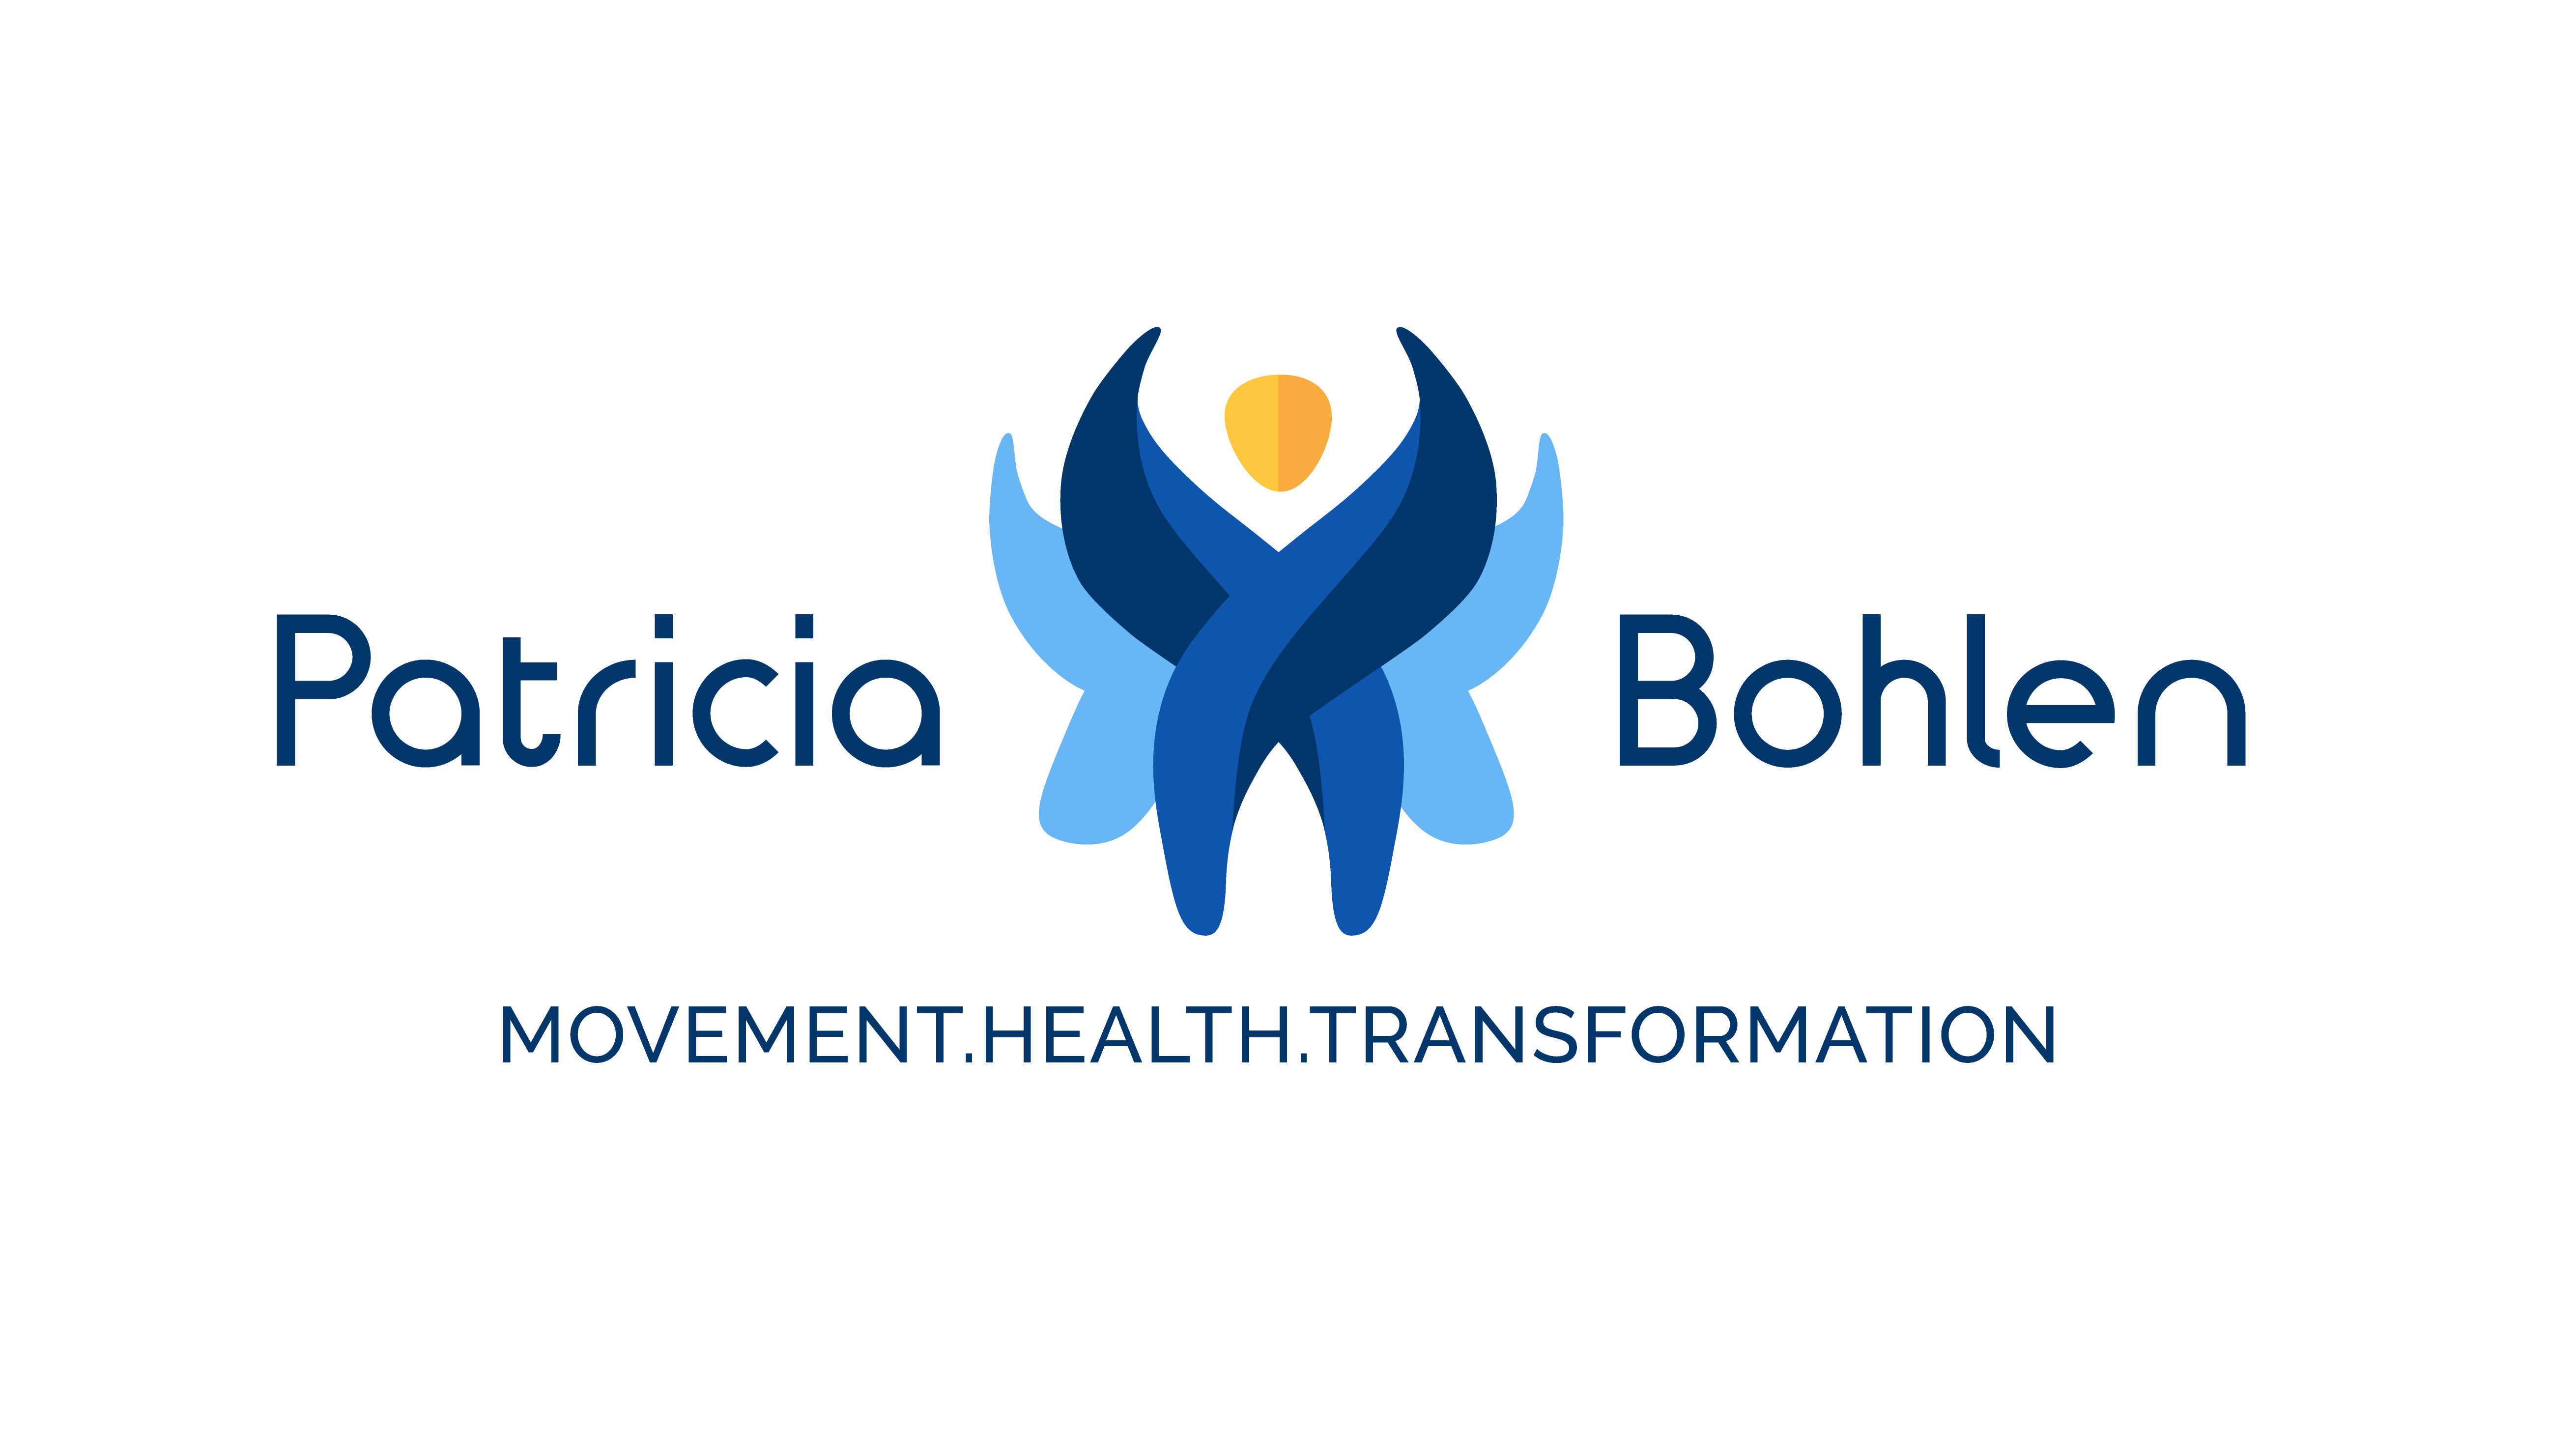 Patricia Bohlen - Movement, Health & Transformation